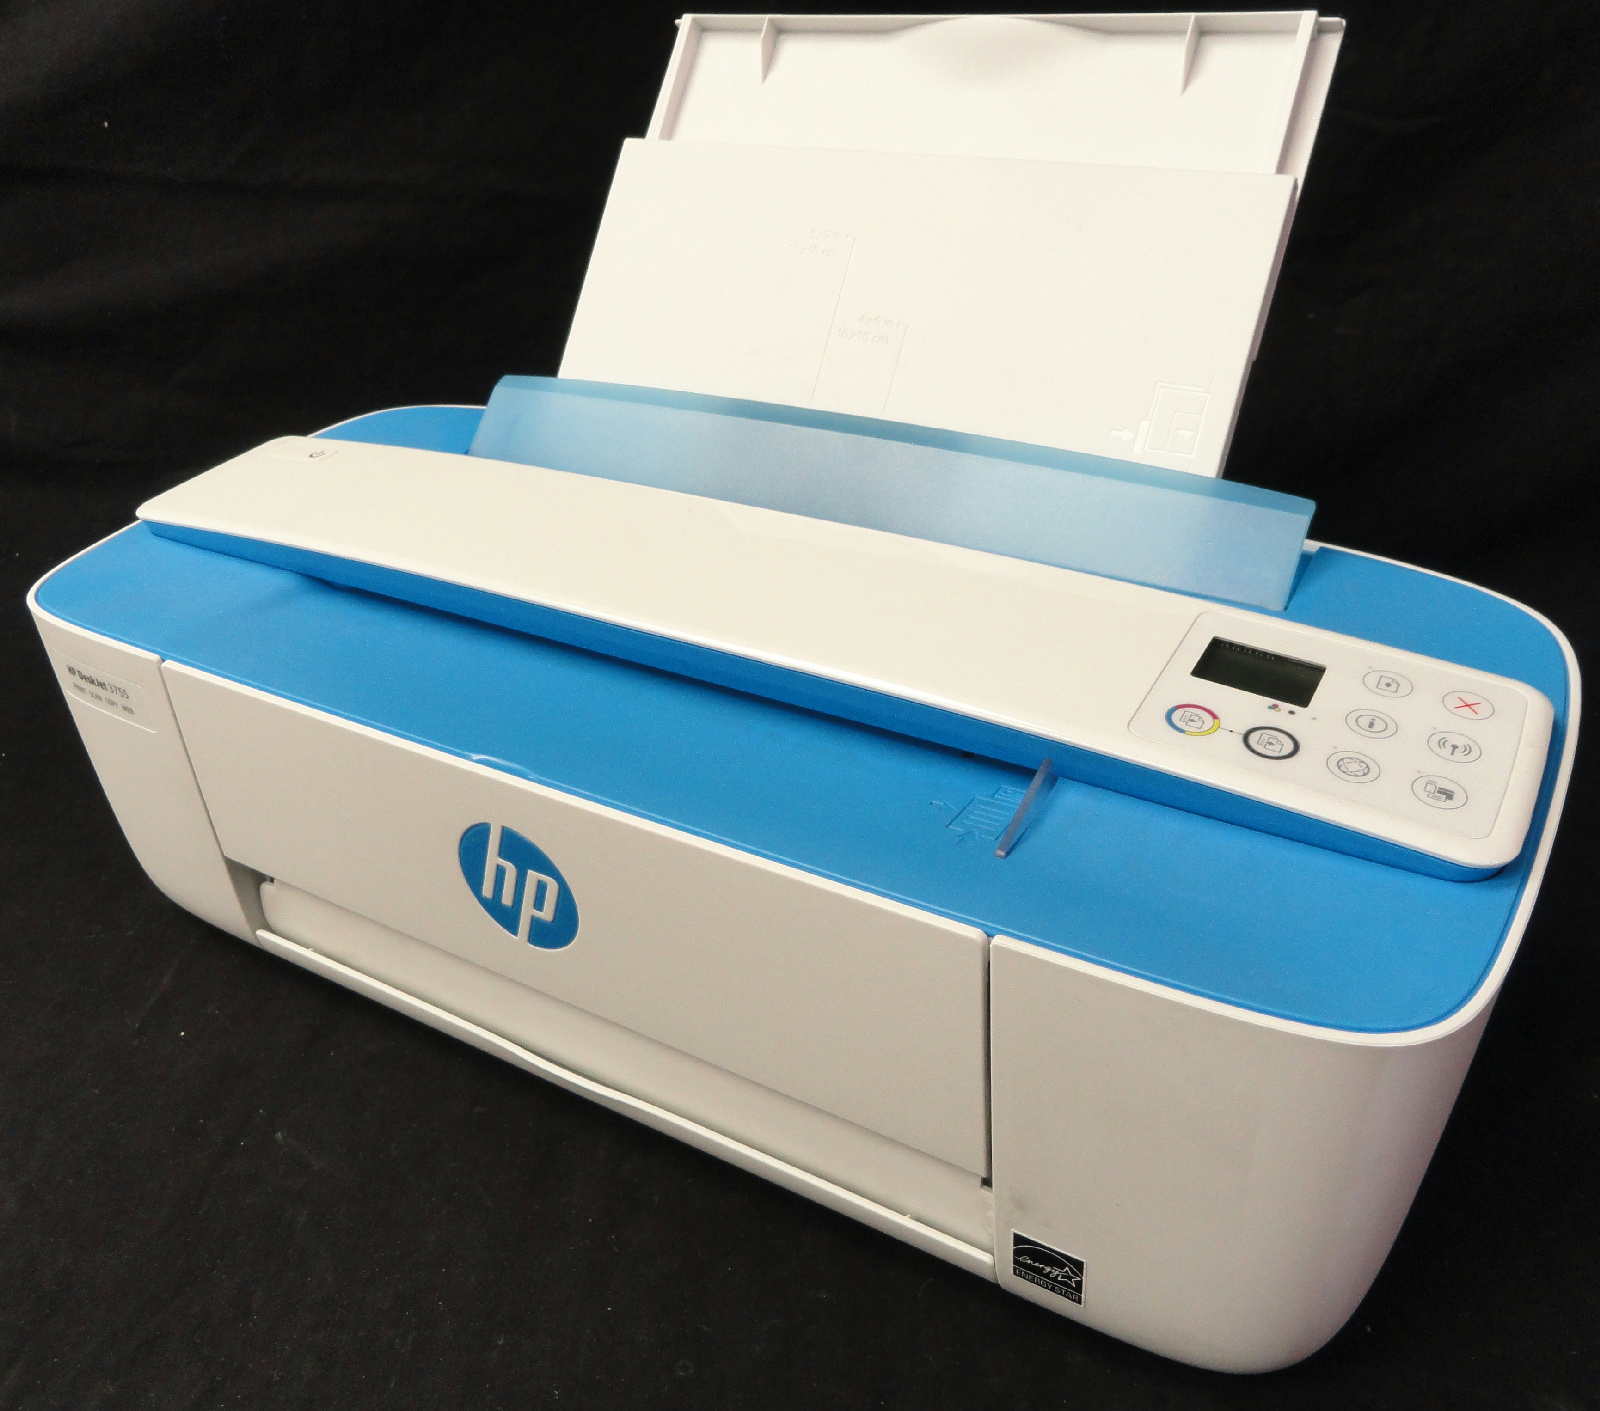 HP DeskJet 3755 All-in-One Printer | w/ Color & Black Ink ...